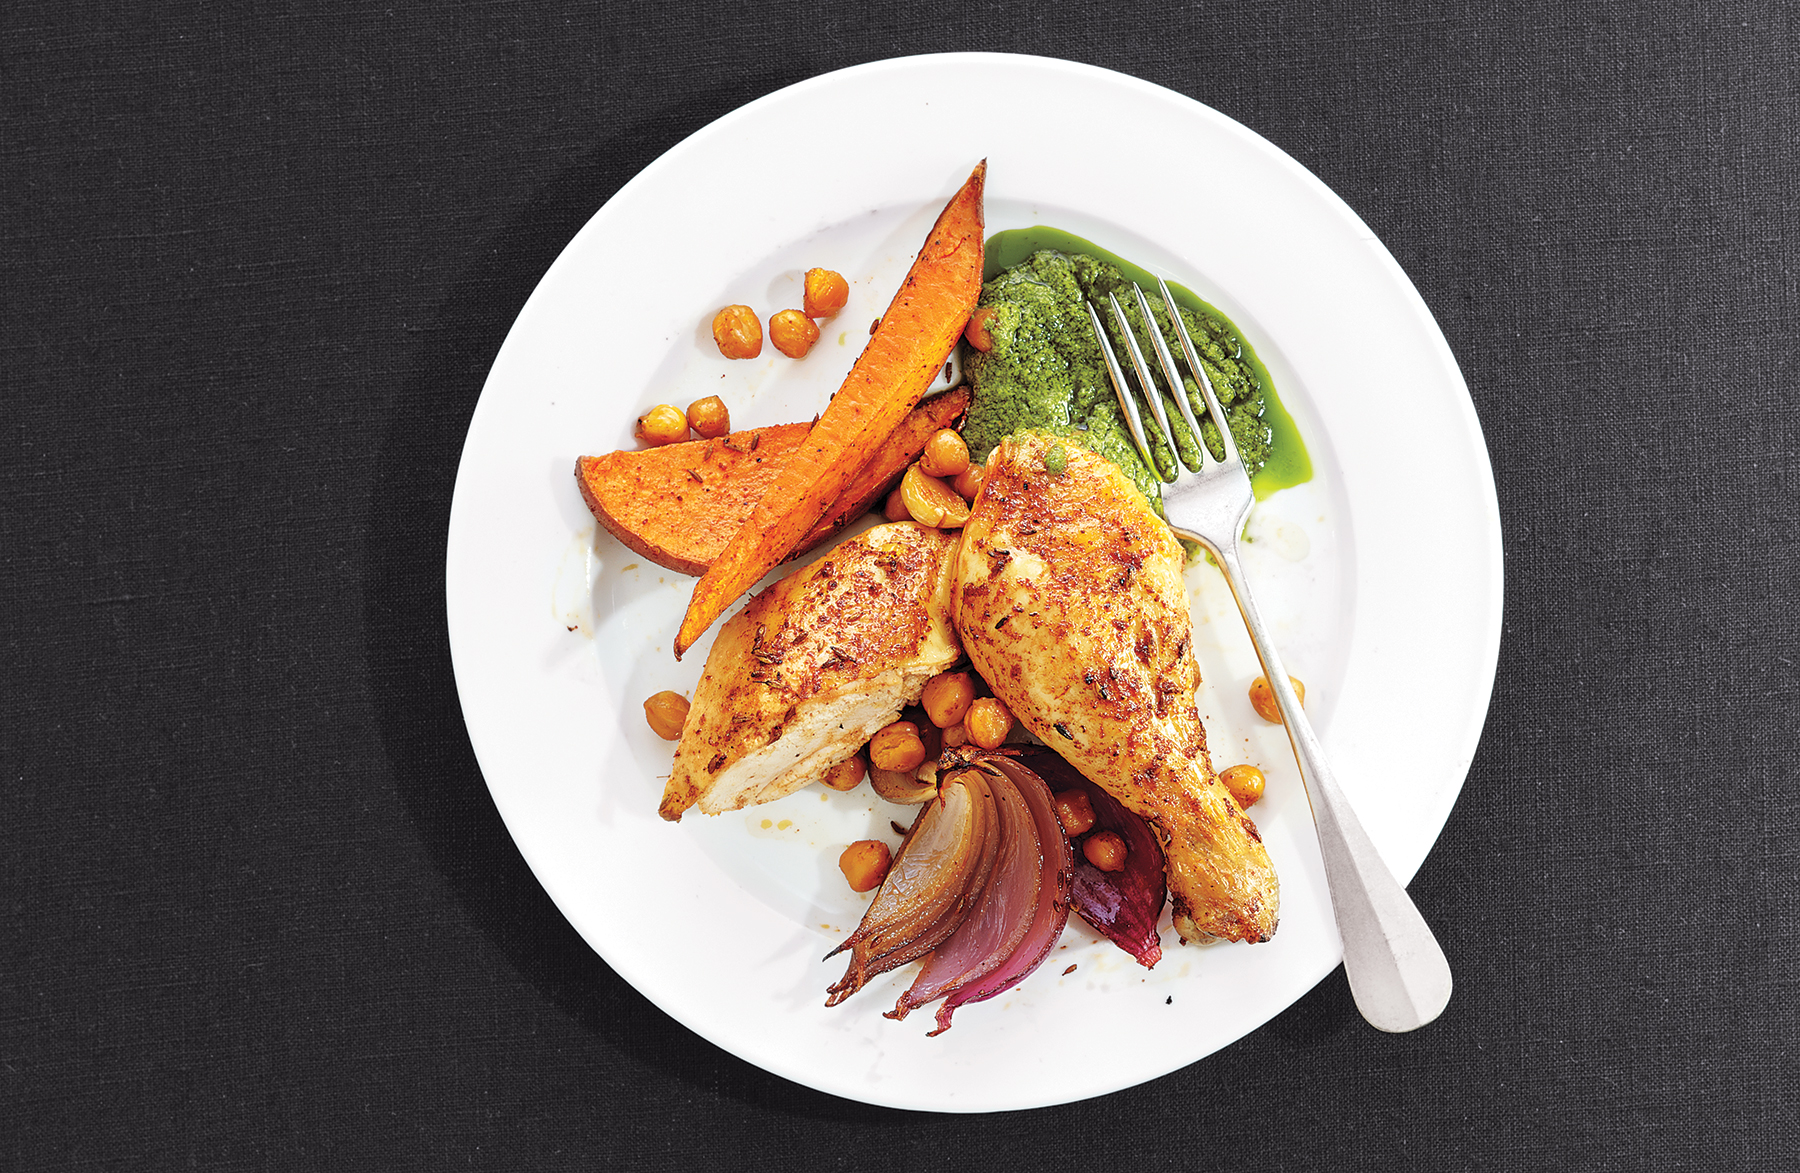 Roast Chicken With Sweet Potatoes and Chickpeas